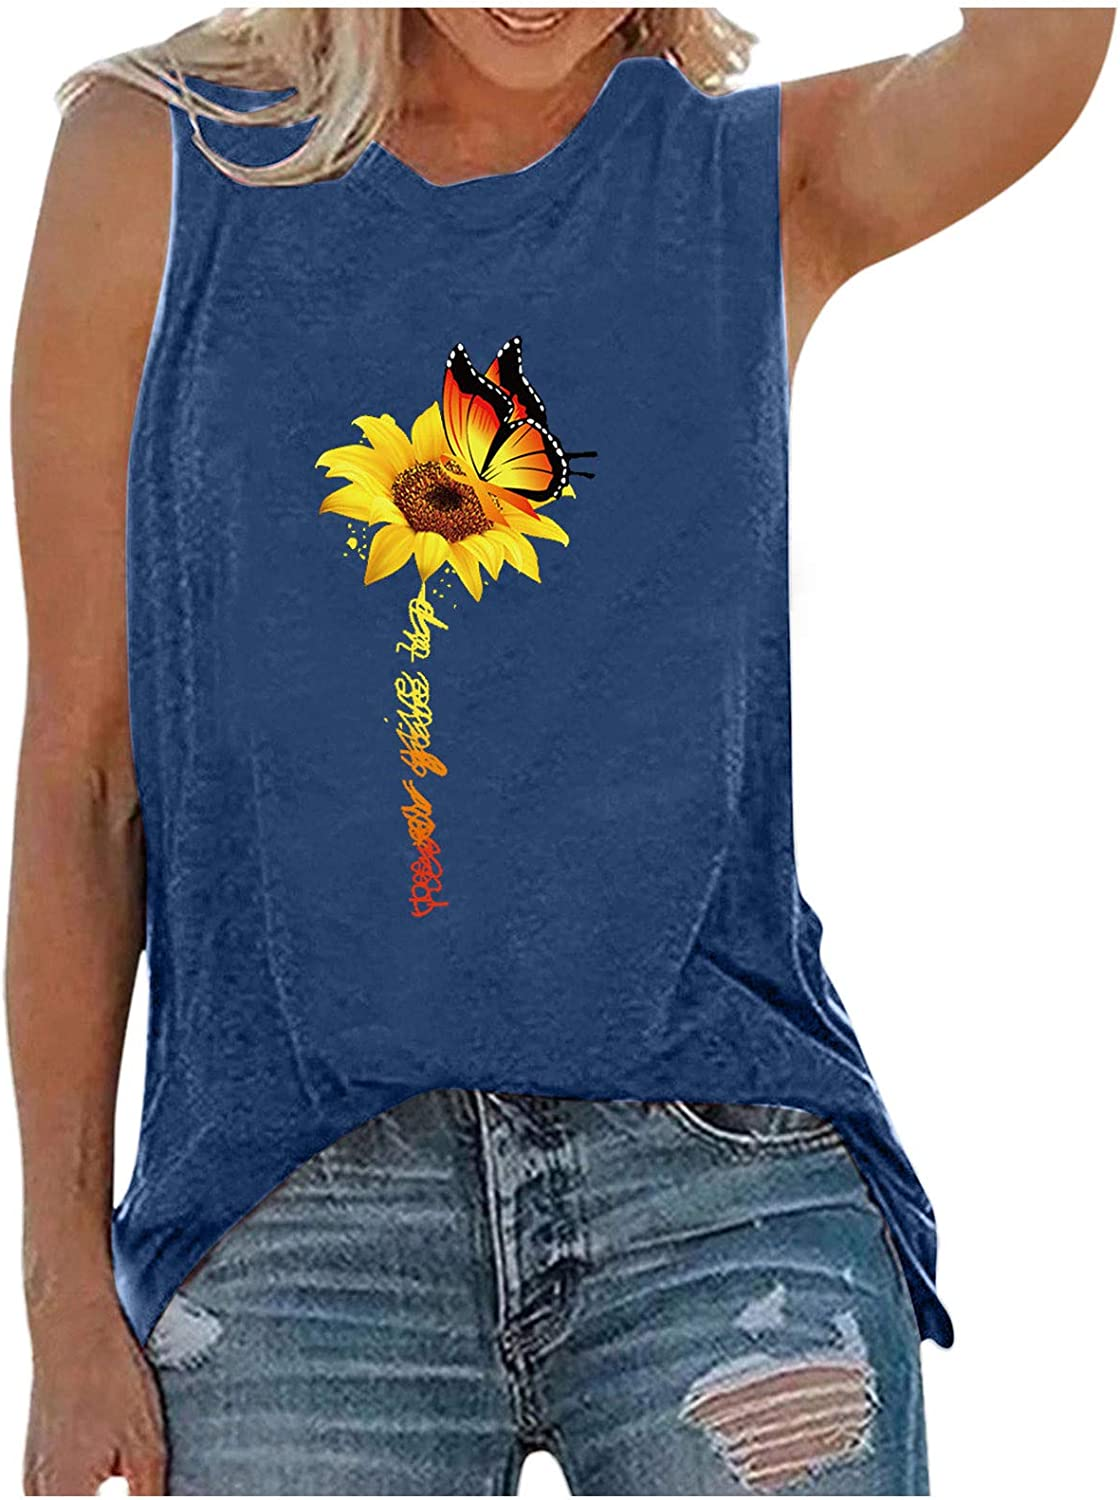 soyienma Tank Tops for Women,Womens Printed Vest O Neck Tshirt Sleeveless Workout Blouse Casual Summer Tank Top Tunic Tee